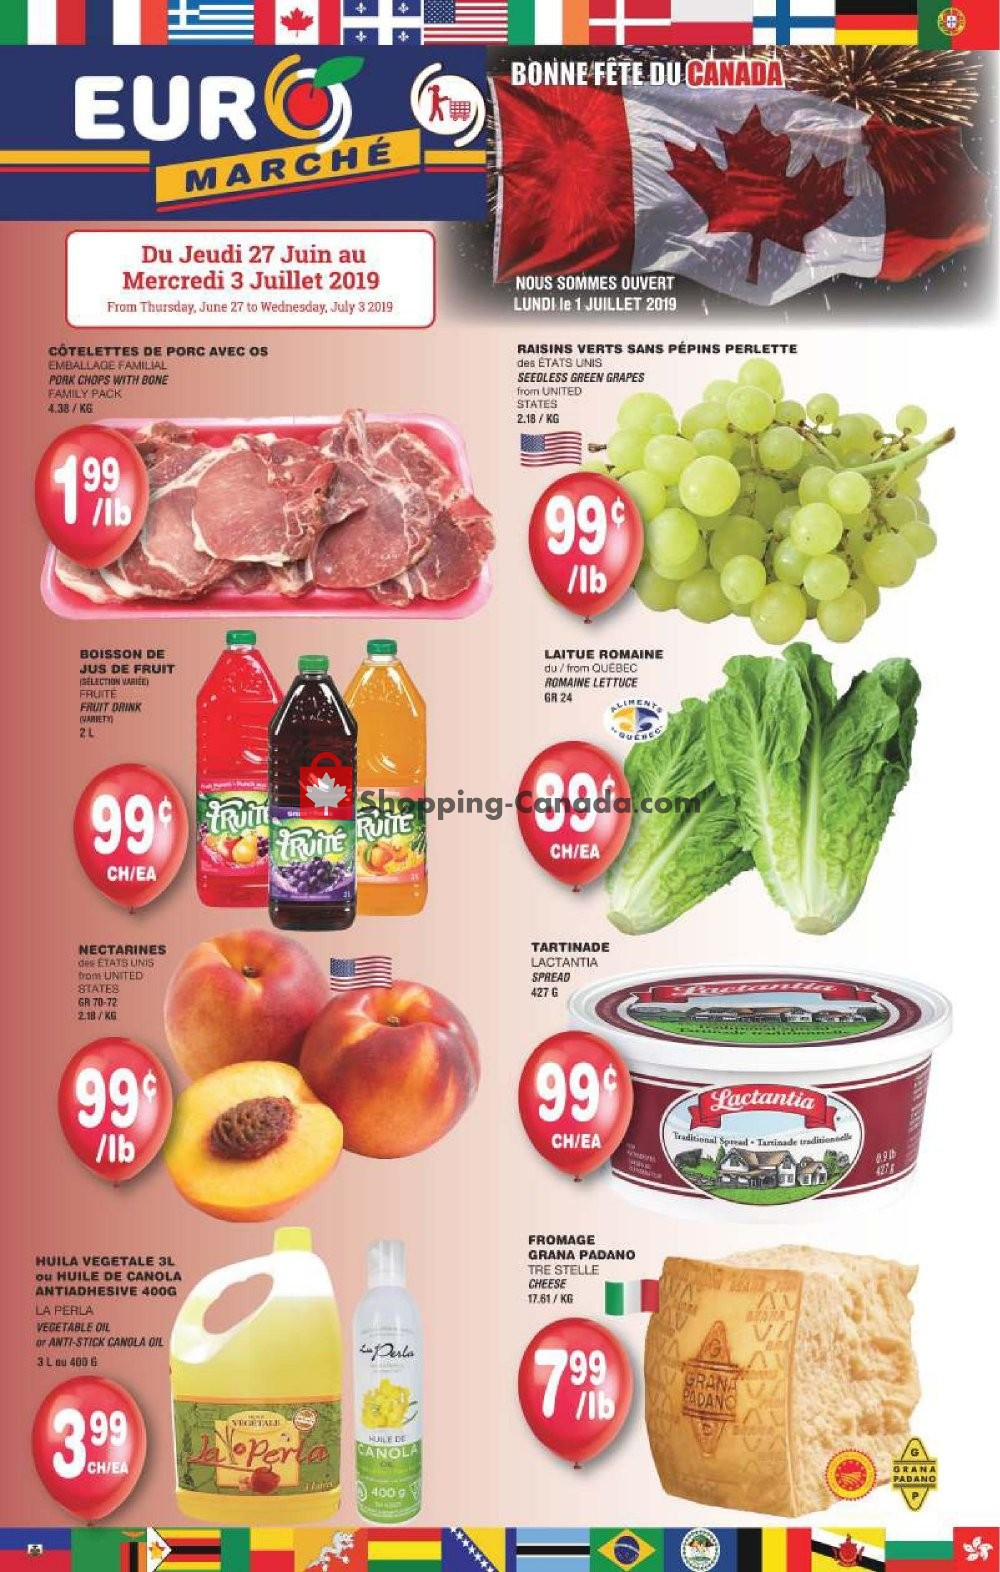 Flyer Euro Marché Canada - from Thursday June 27, 2019 to Wednesday July 3, 2019